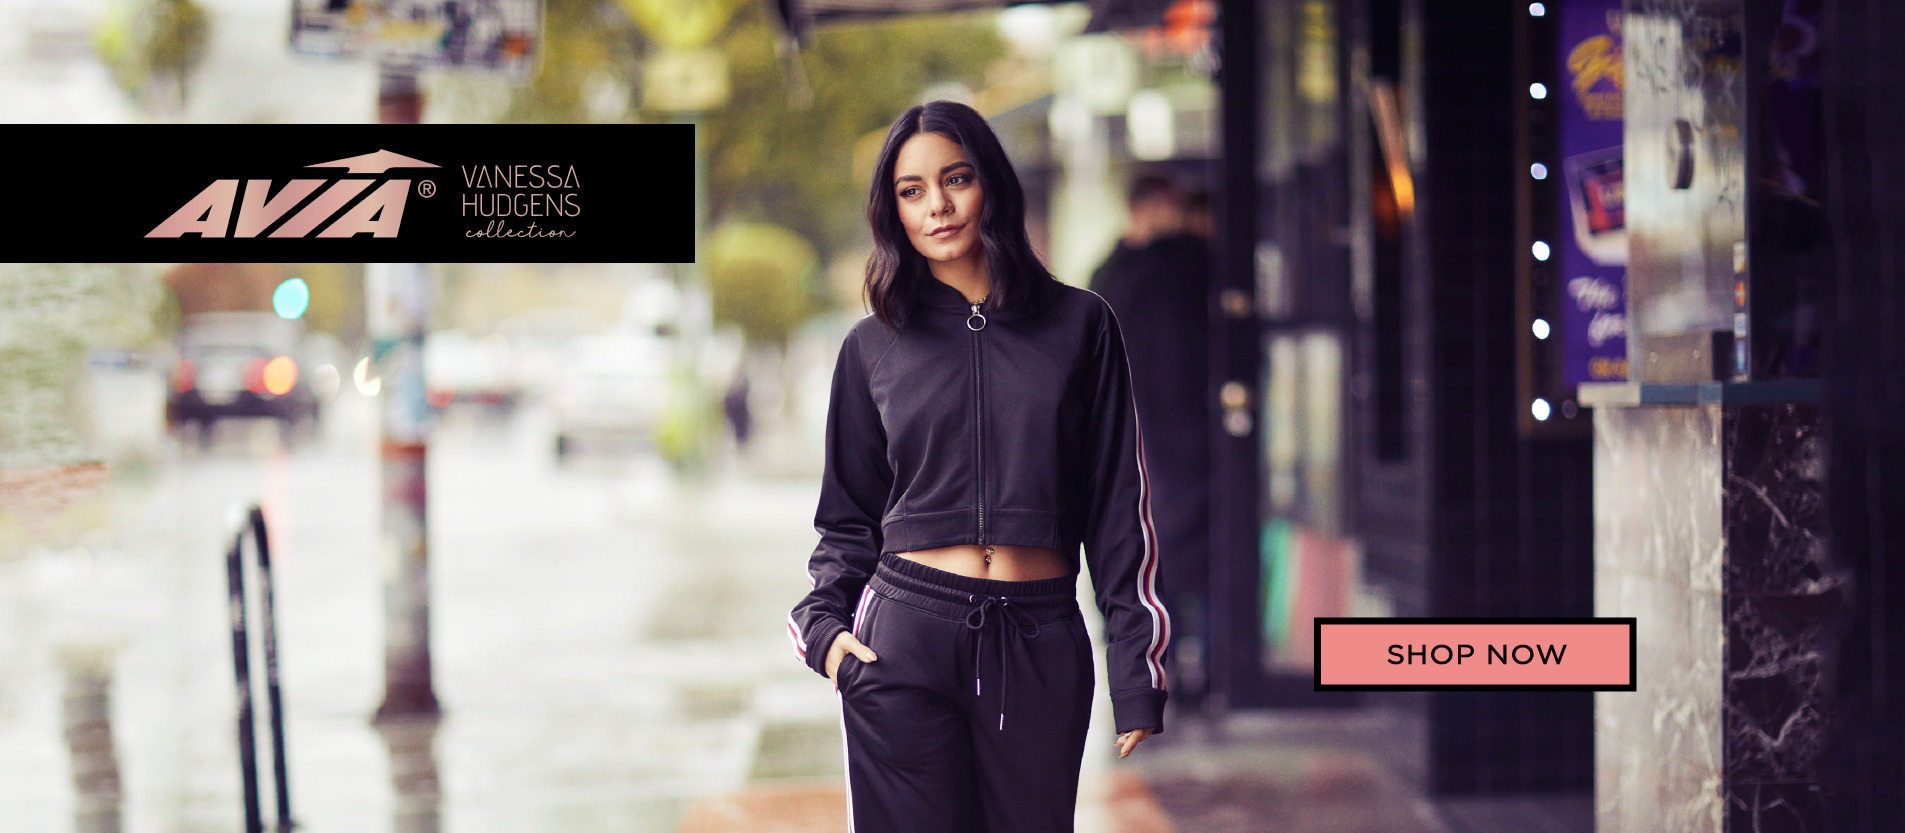 Avia Vanessa Hudgens Apparel Collection, Featuring Activewear, Sports Bras, Leggings, Tops,ottoms, Lounge Pants, Jackets, Tees, Hoodies and more